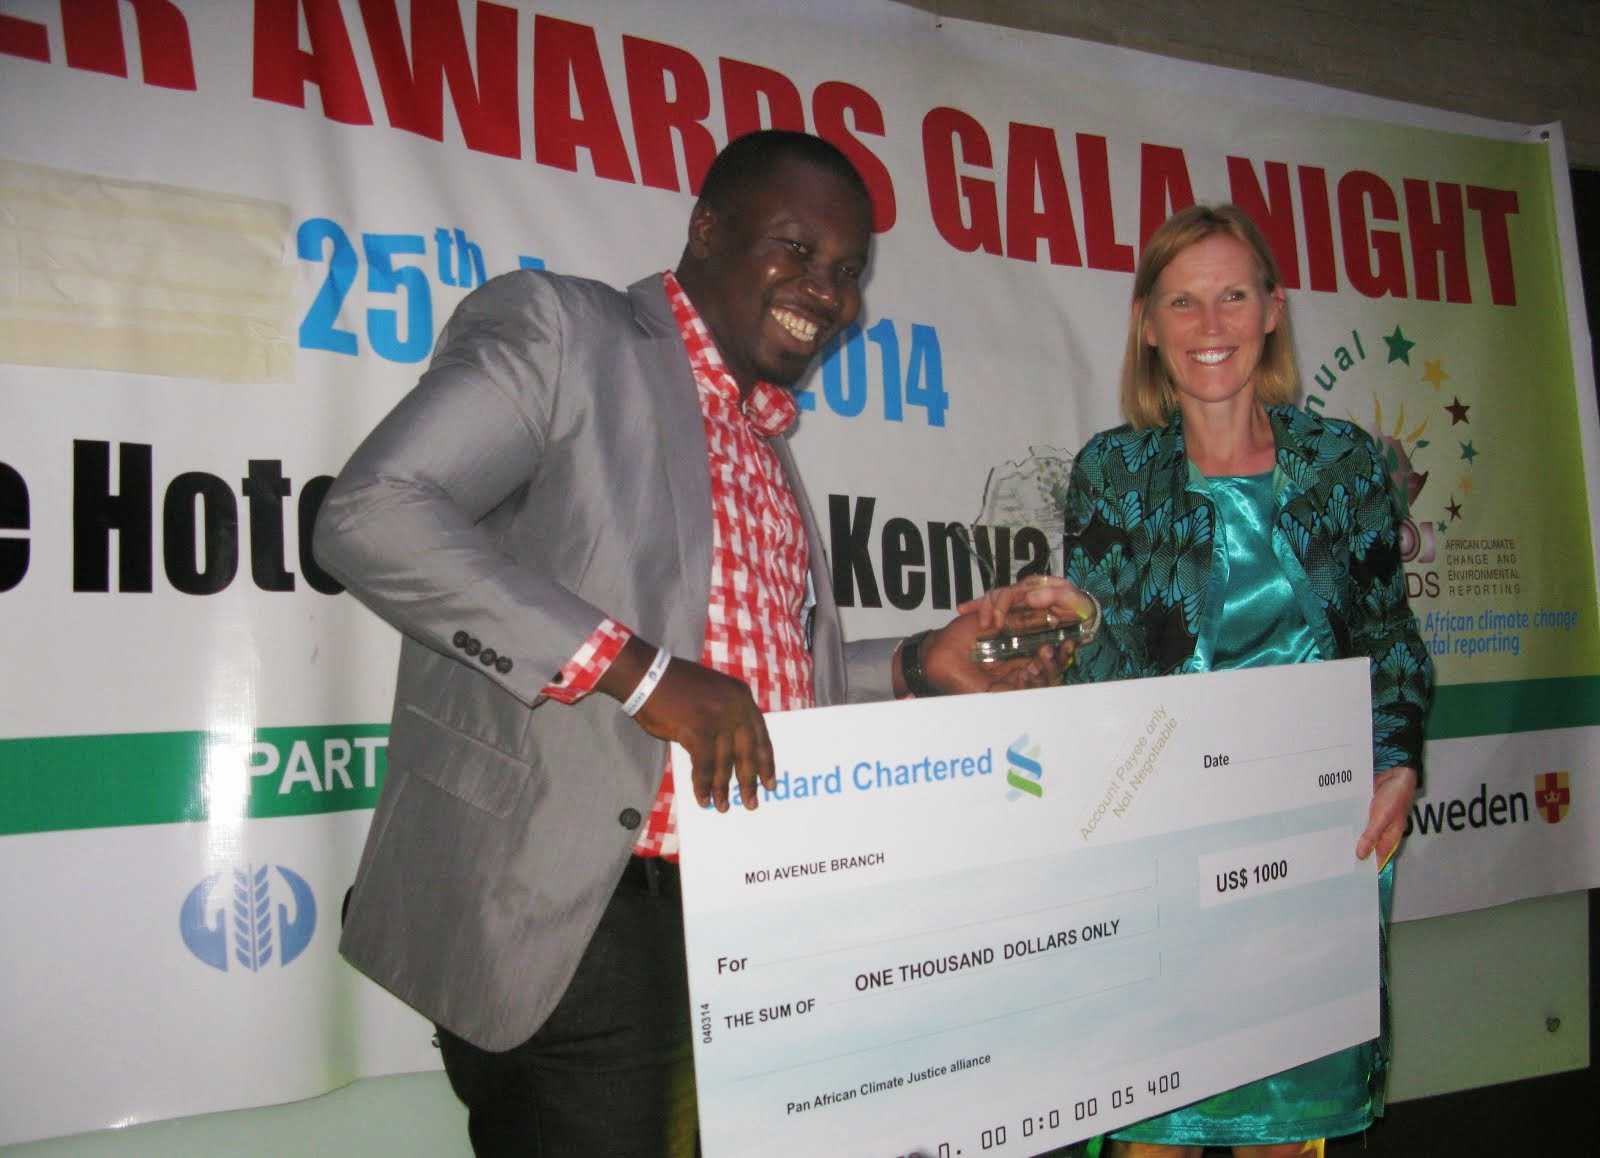 Climate Change Awards 2014 Nairobi